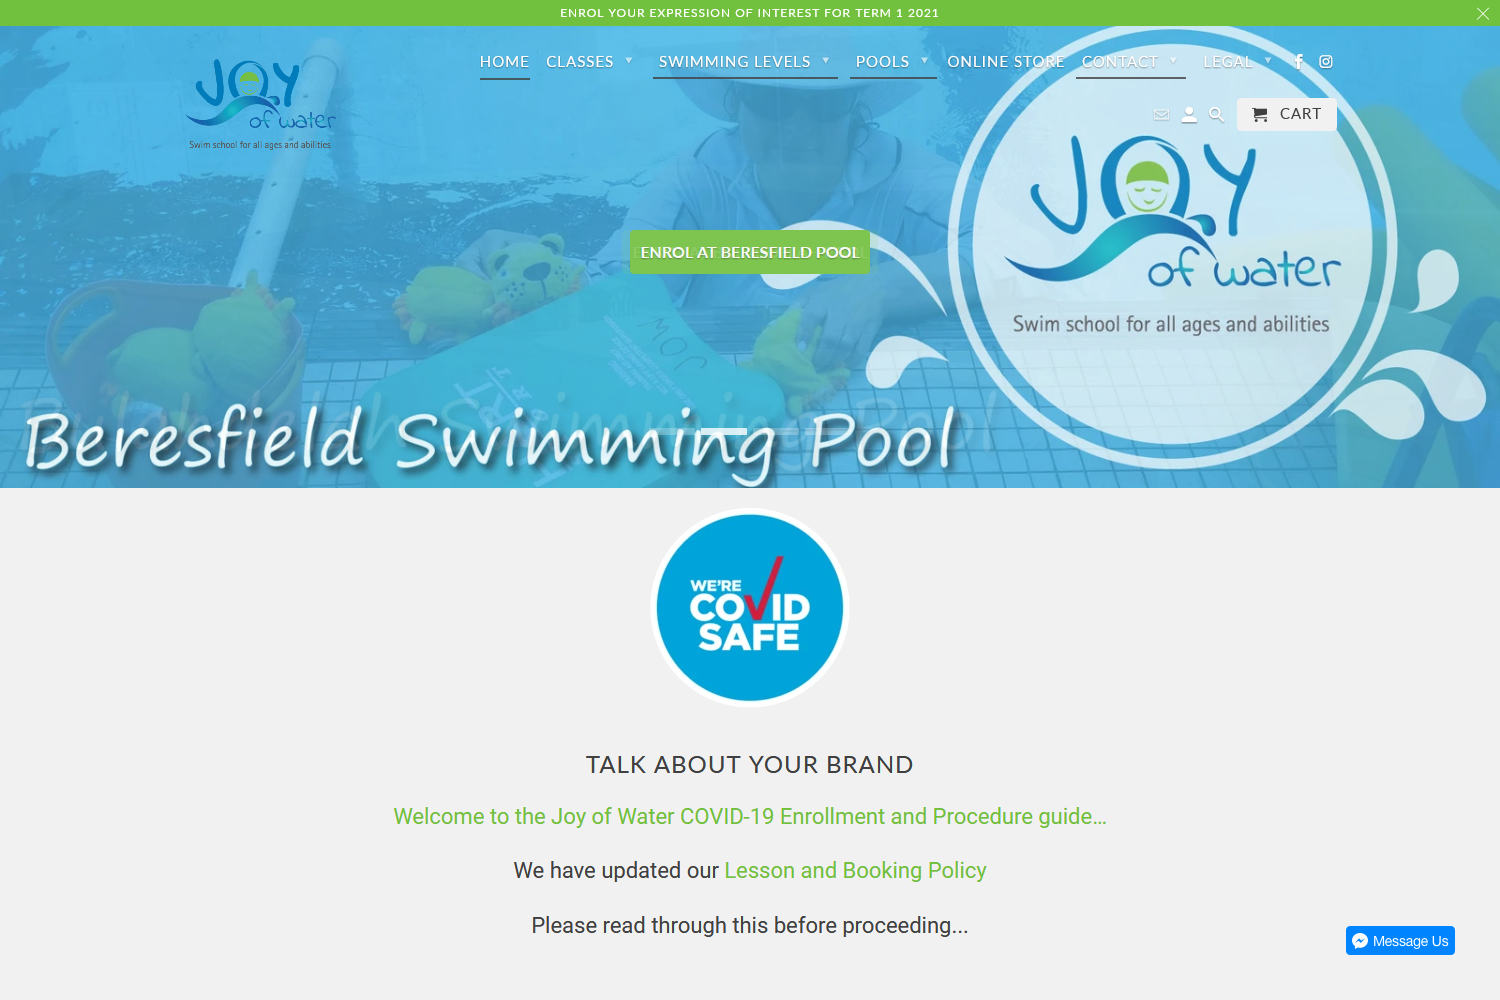 Welcome to the New Joy of Water Swim School website